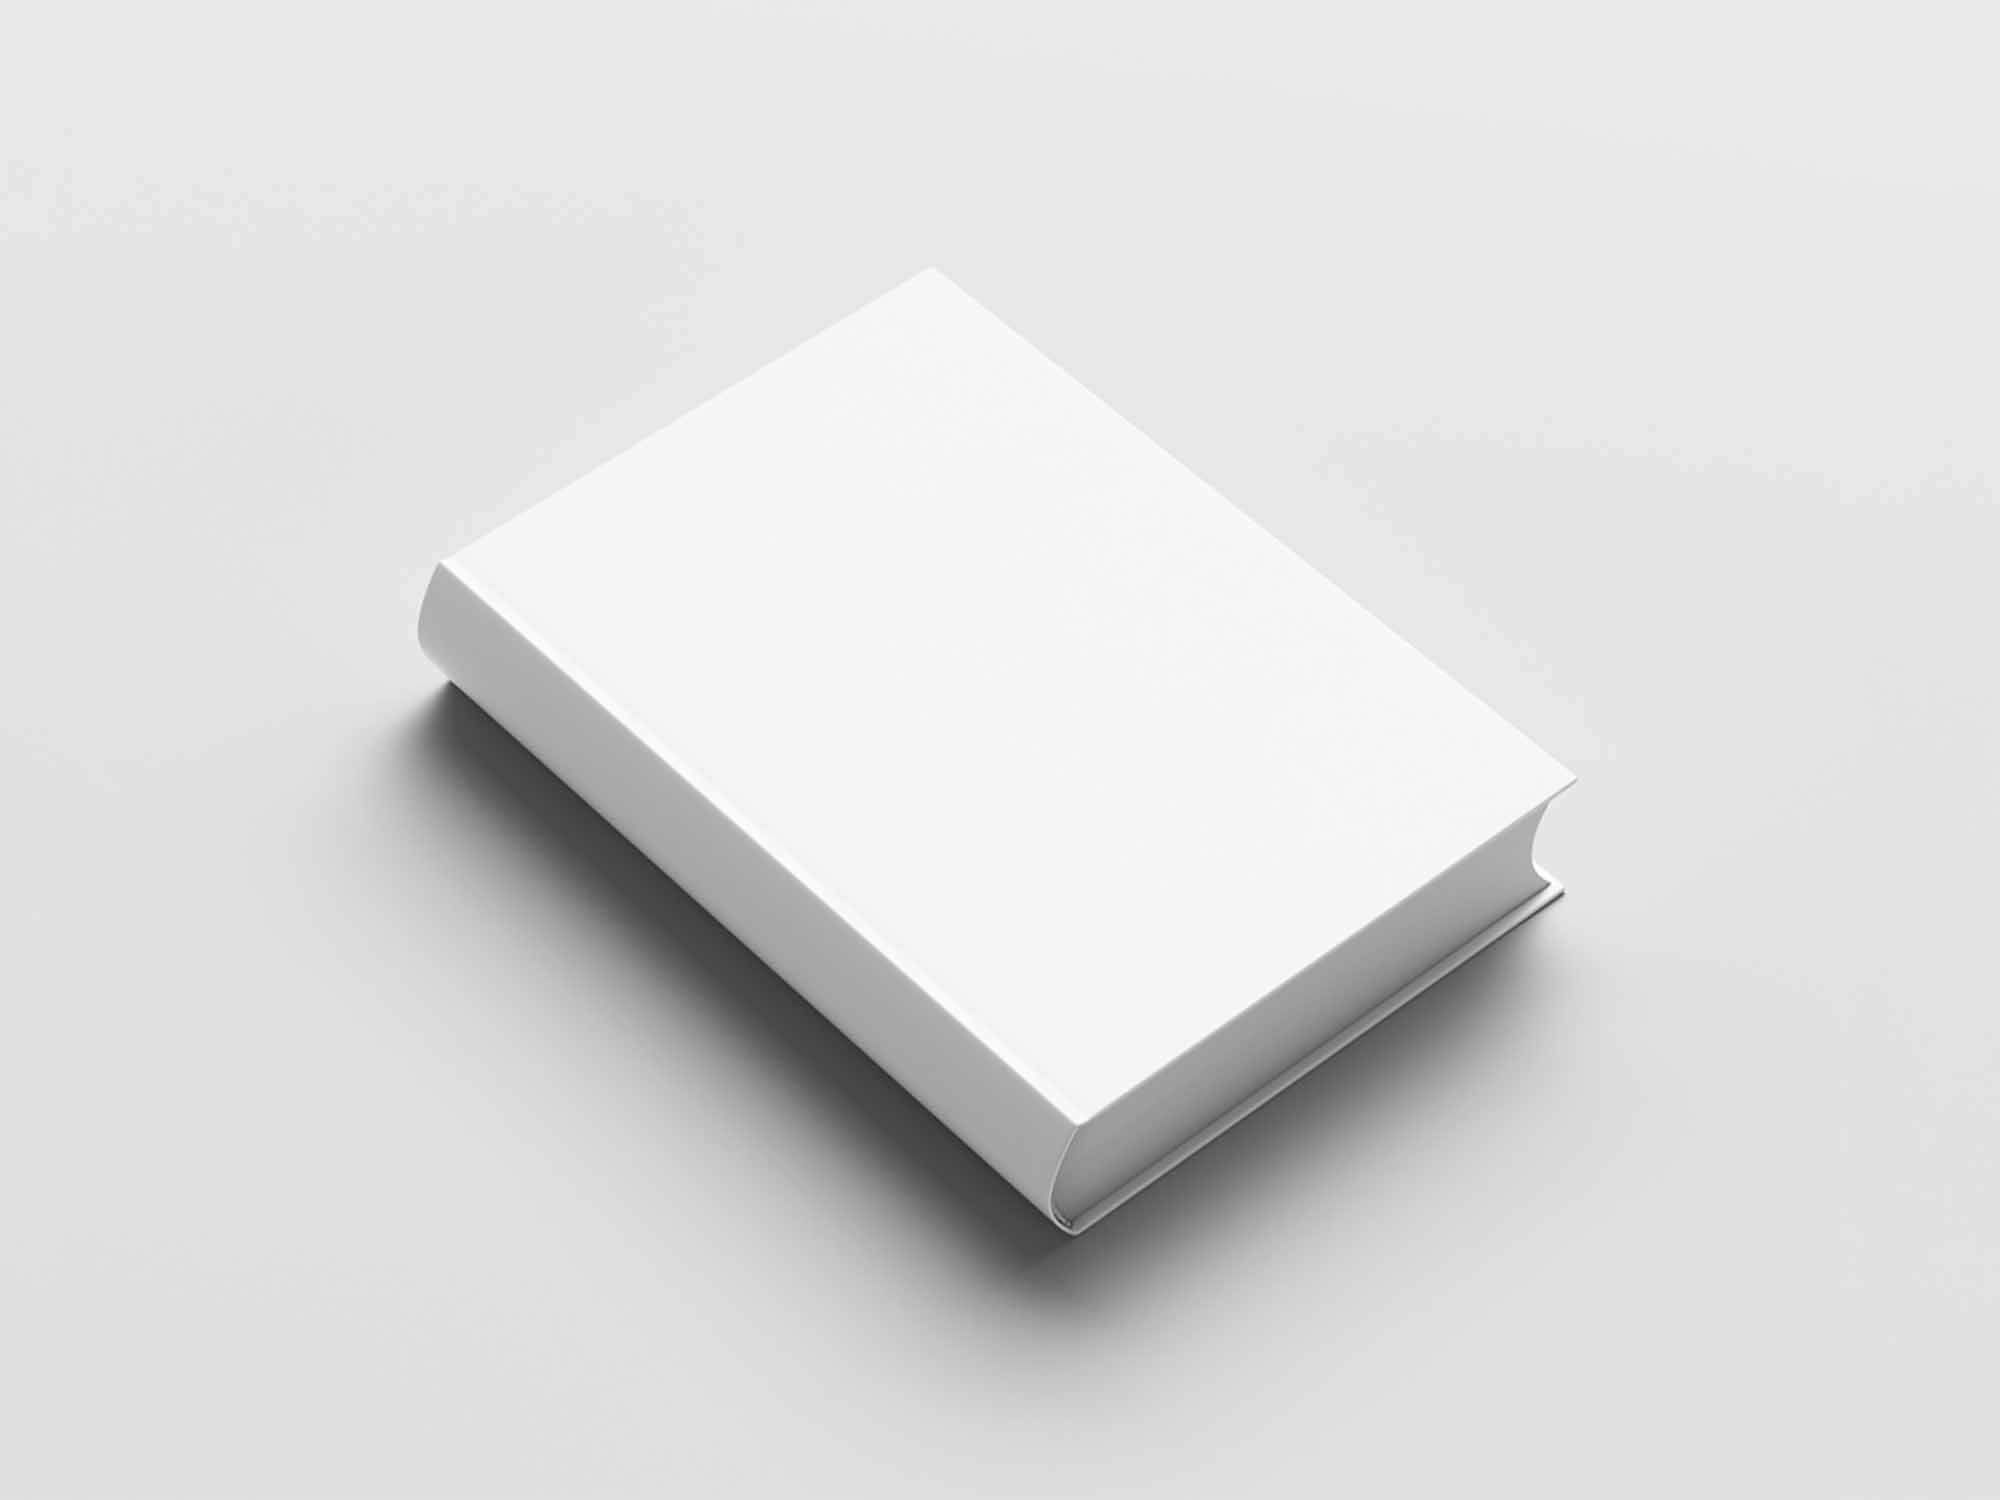 Angled Hard Cover Book Mockup 2